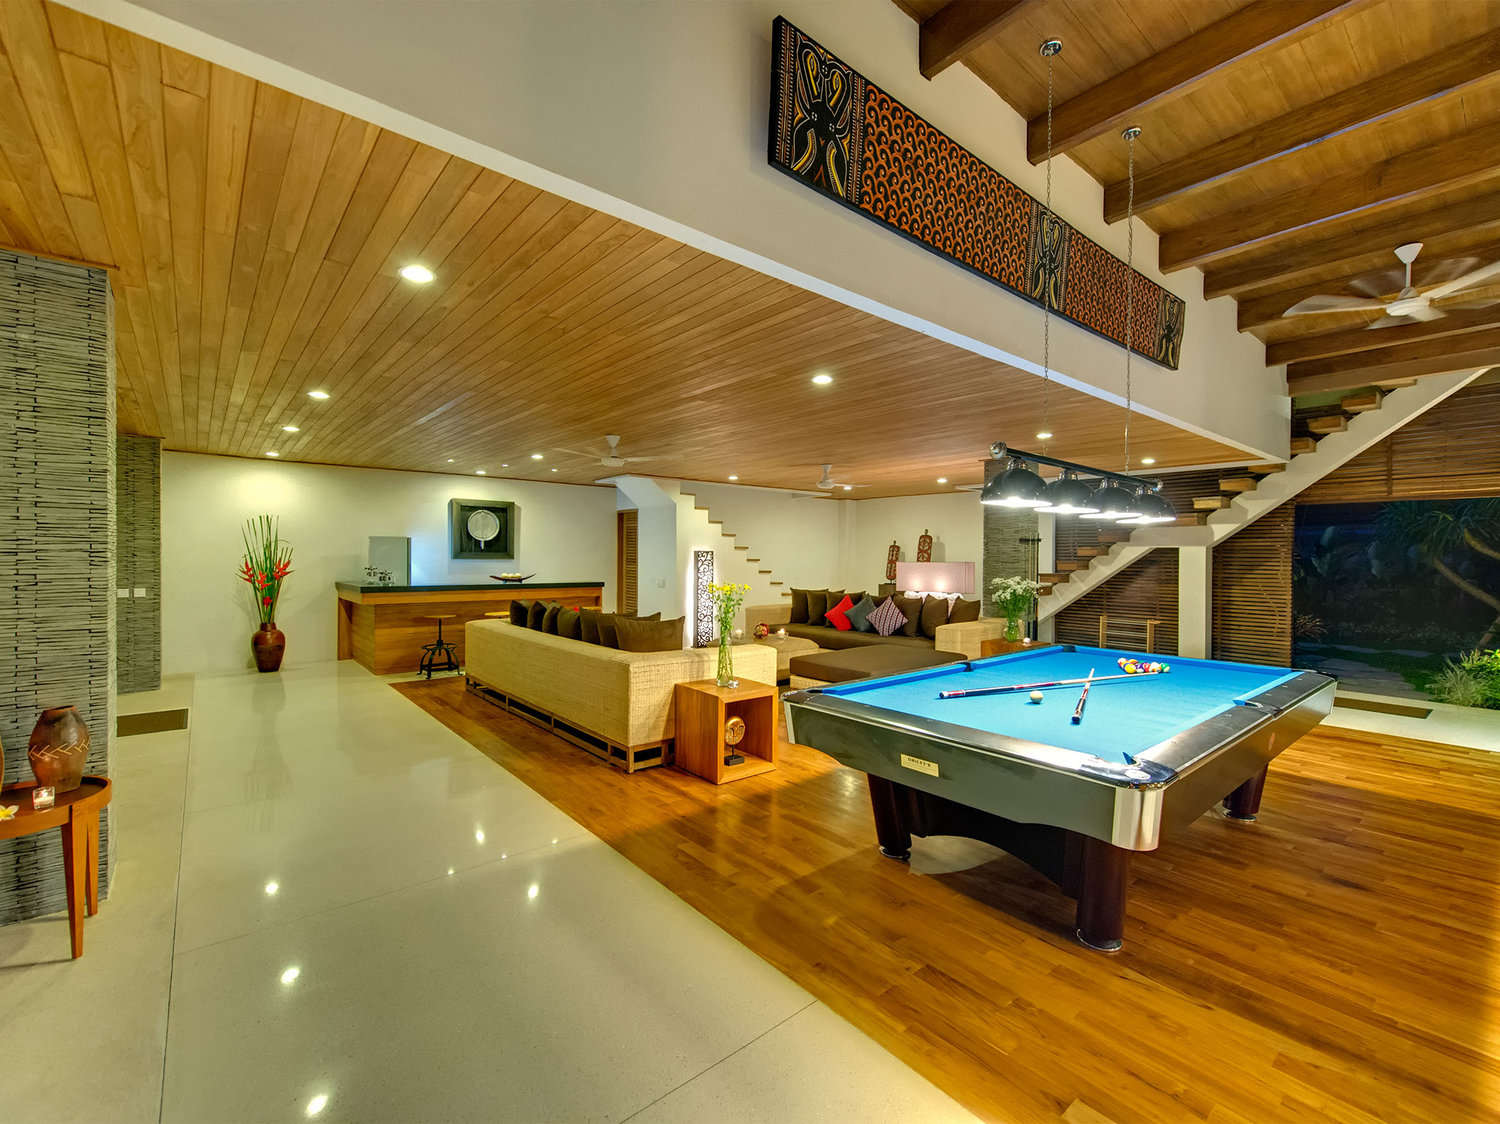 movers ft city pool table billiard services advanced utah park moving